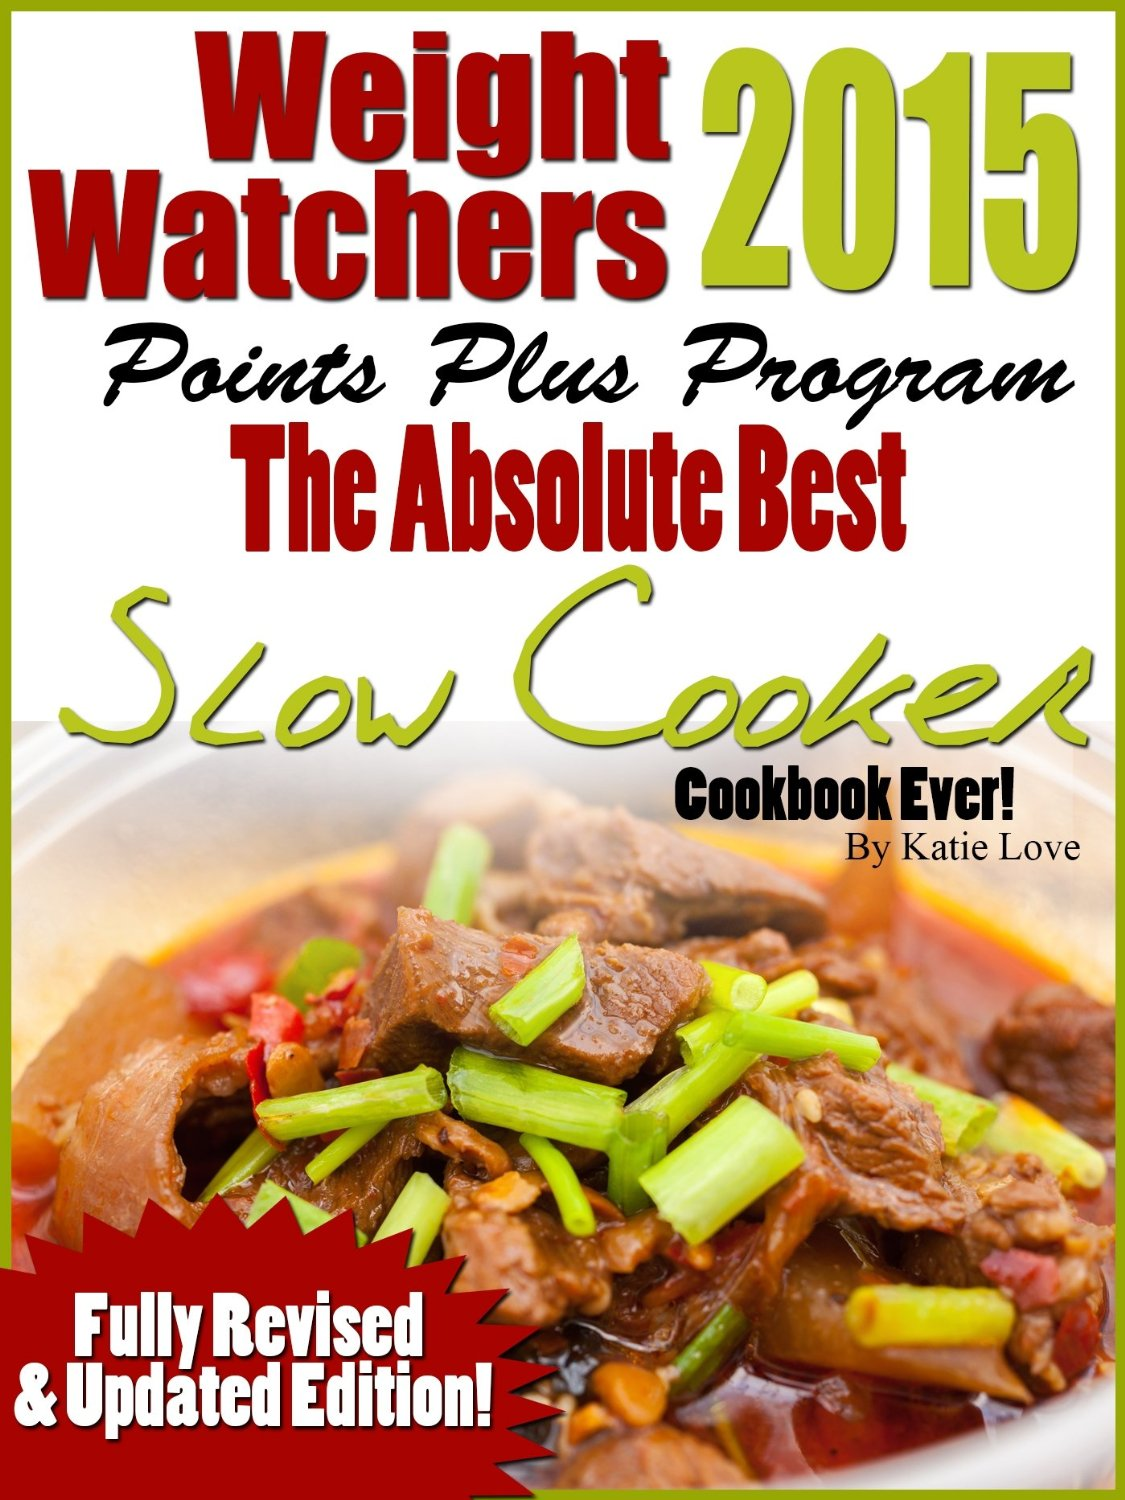 Weight Watchers 2015 The Absolutely Best Points Plus Slow Cooker Cookbook Ever! free download